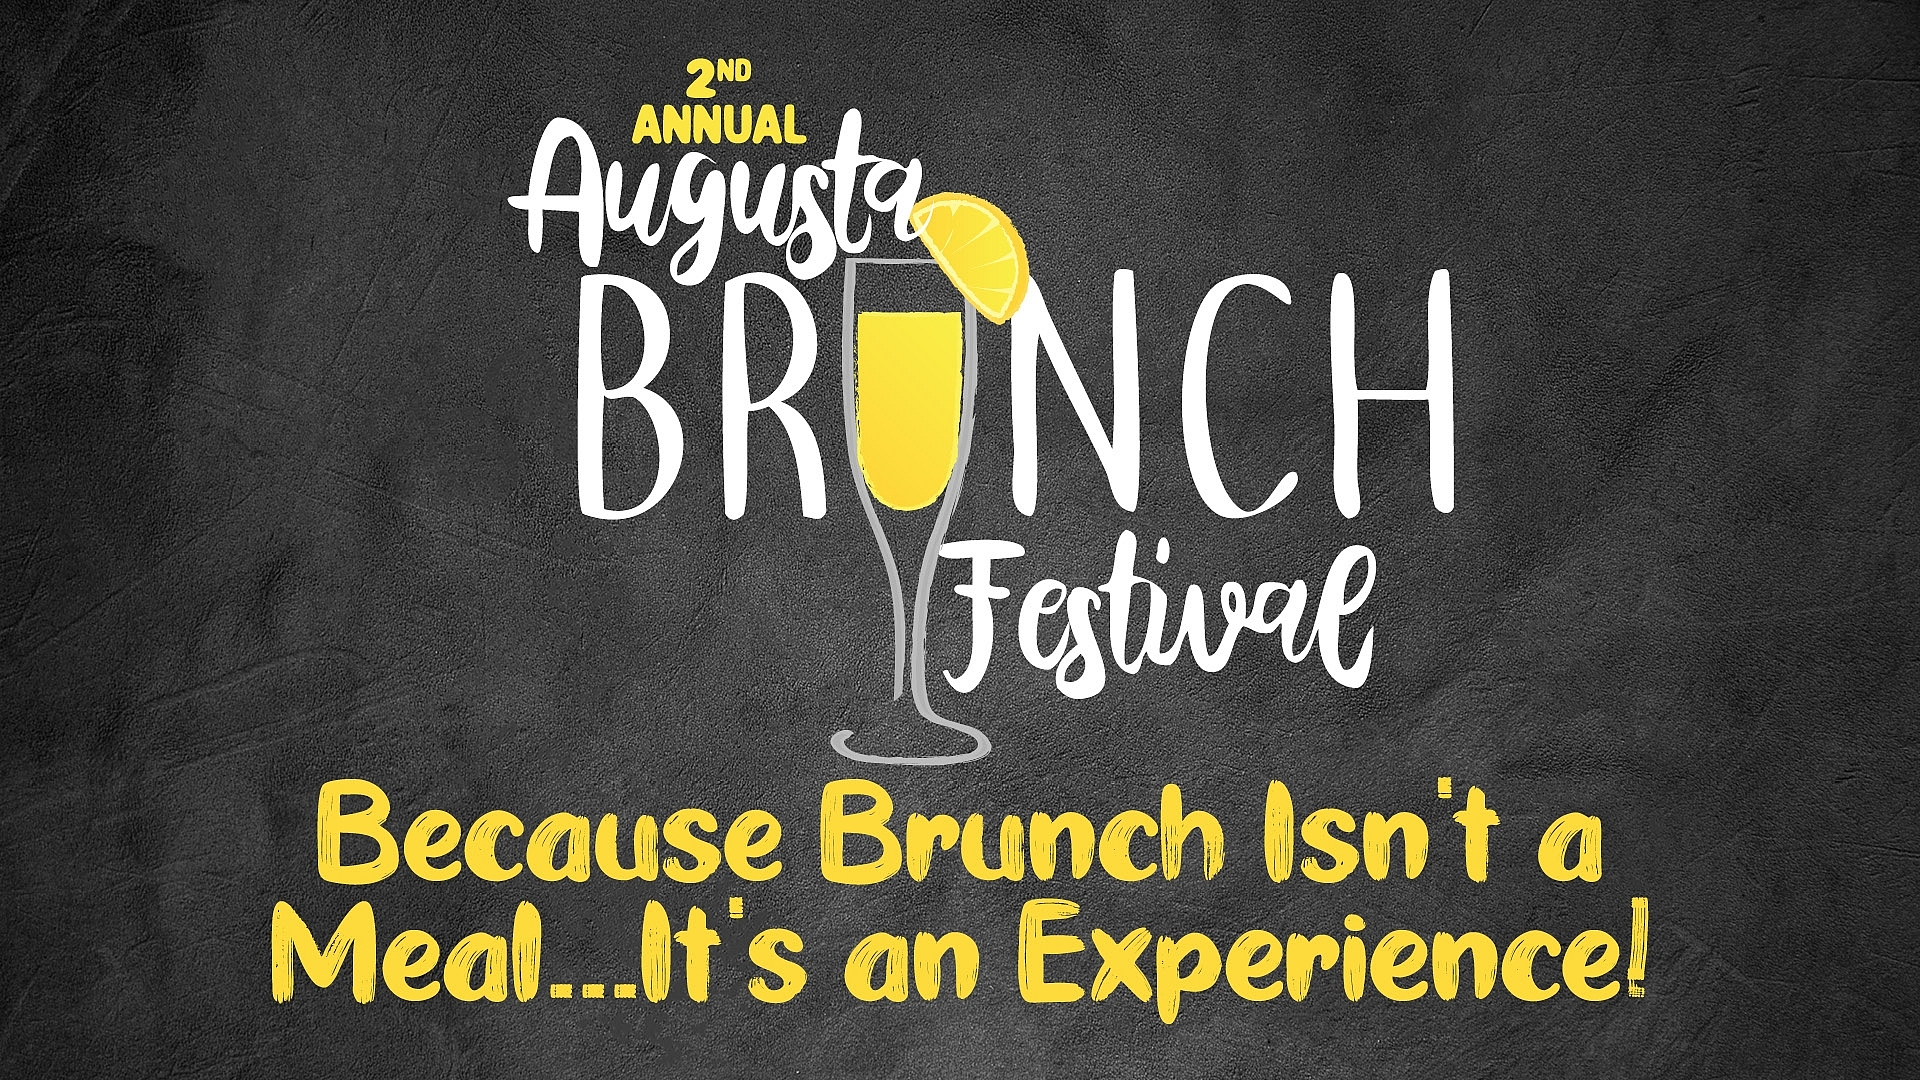 2nd Annual Augusta Brunch Festival